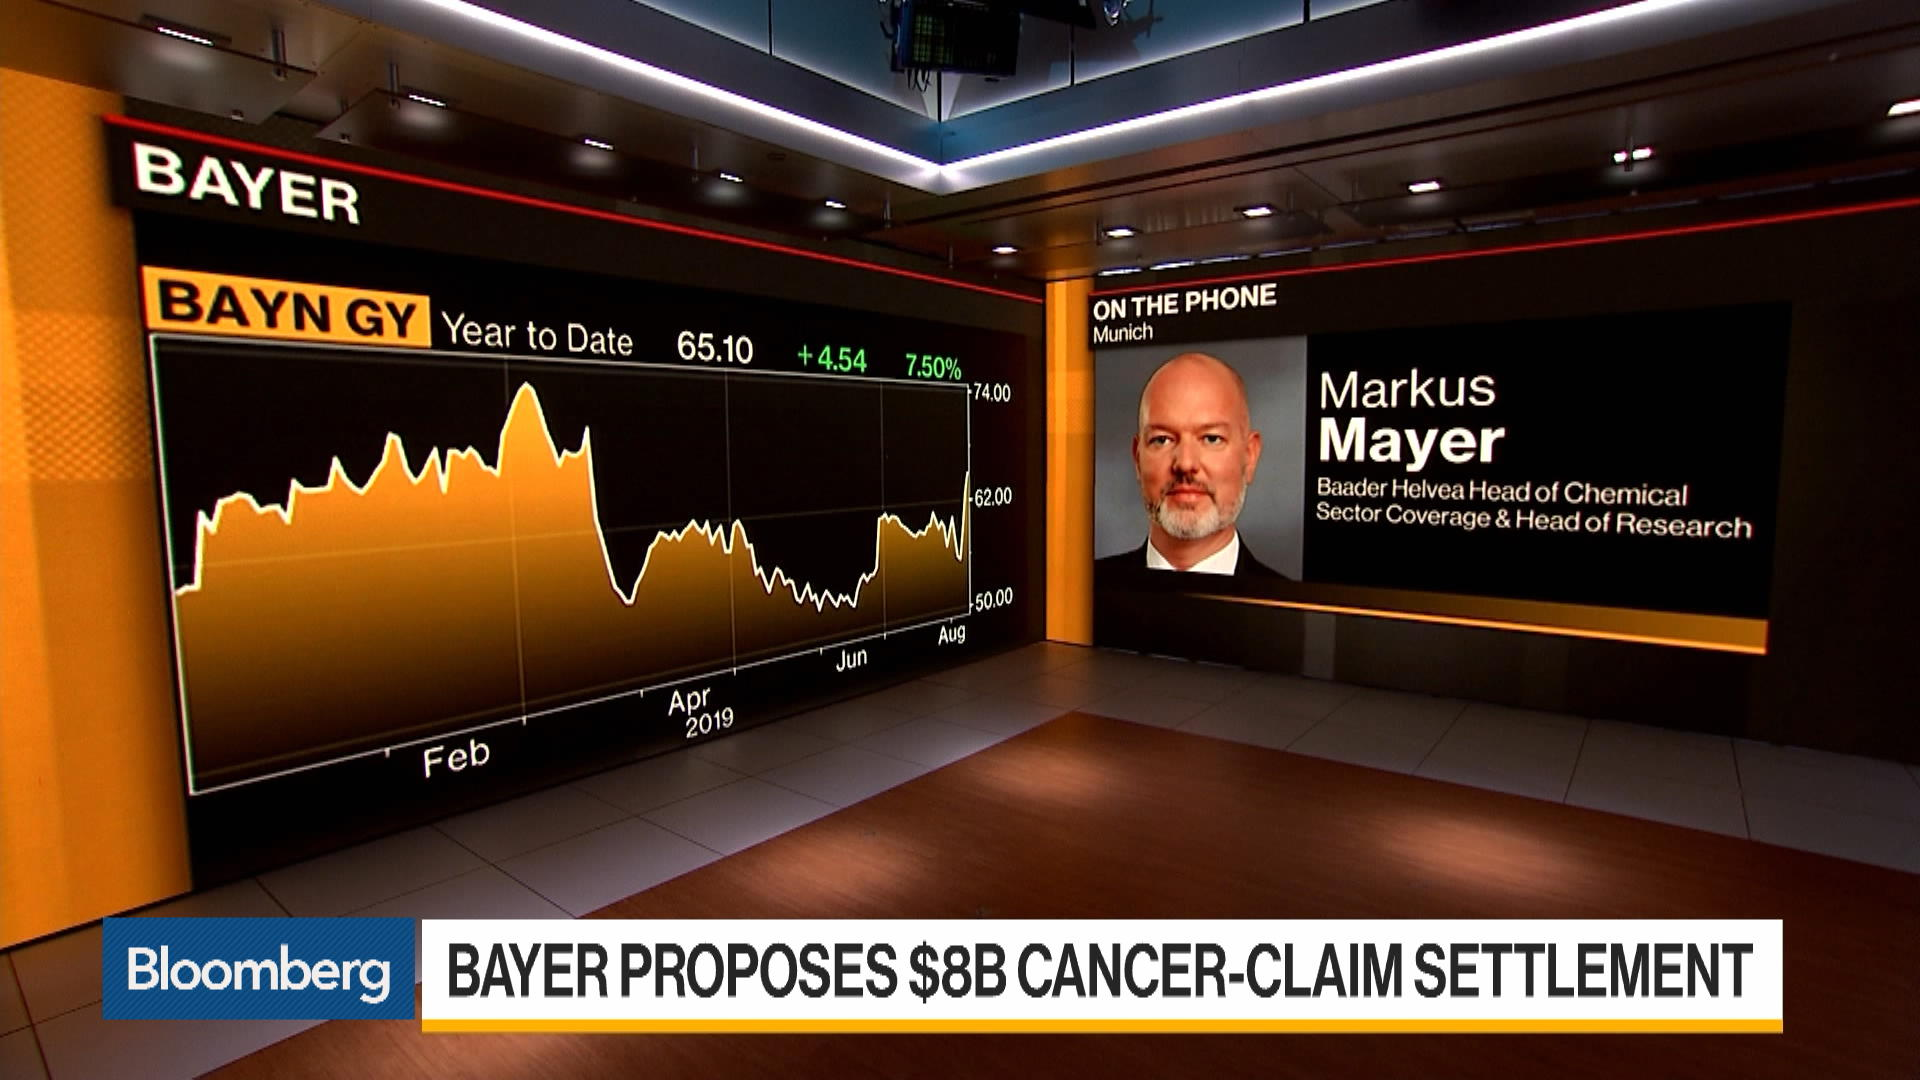 Bayer Is Said to Seek $8 Billion Roundup Cancer-Claim Deal - Bloomberg